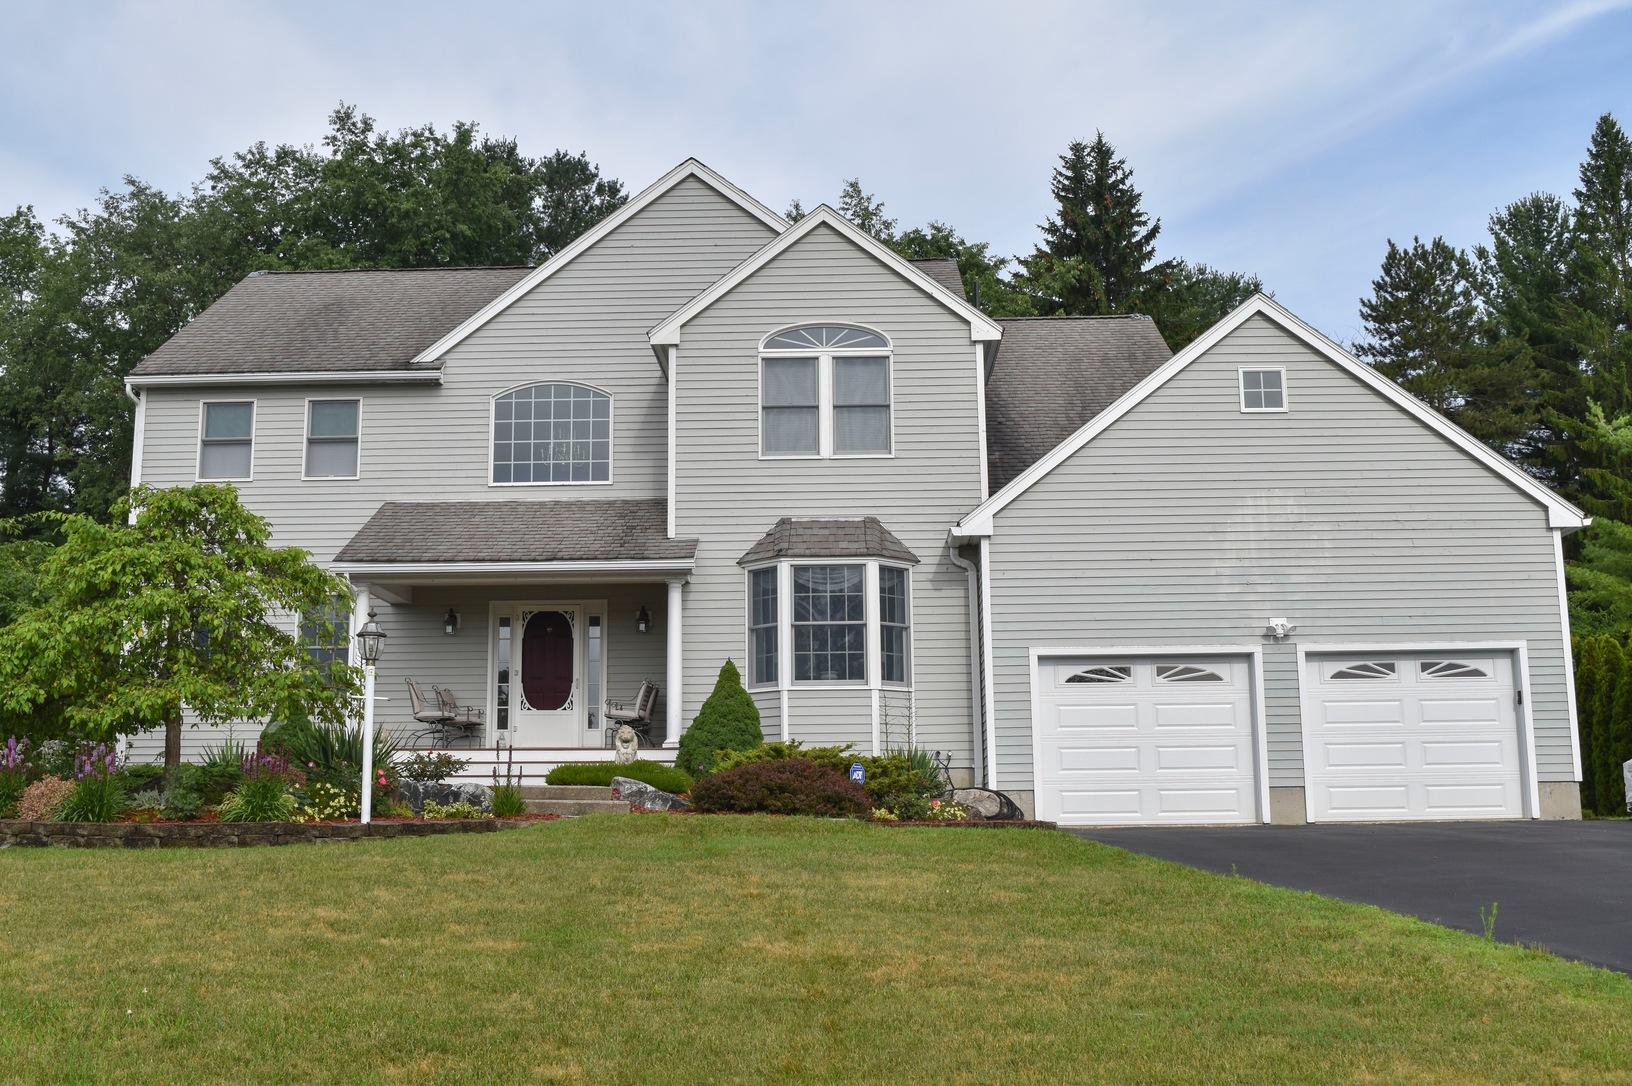 Pittsfield, MA Roof Replacement IKO Dynasty Granite Black Shingles - Before Photo